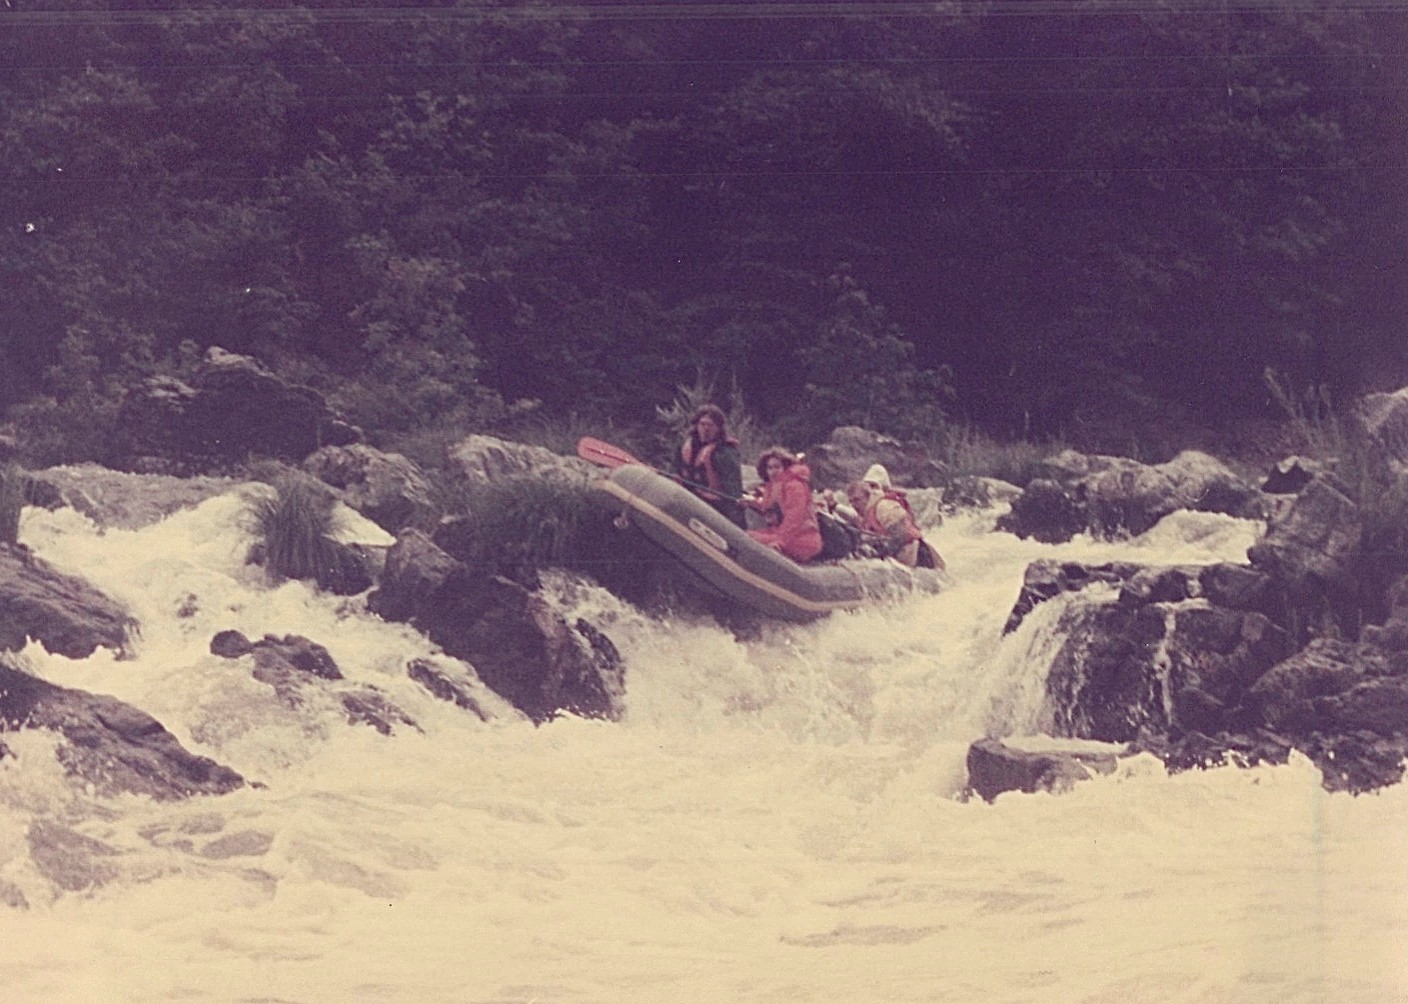 Steve & Lorraine are jolted forward as raft gets stuck on a rock...